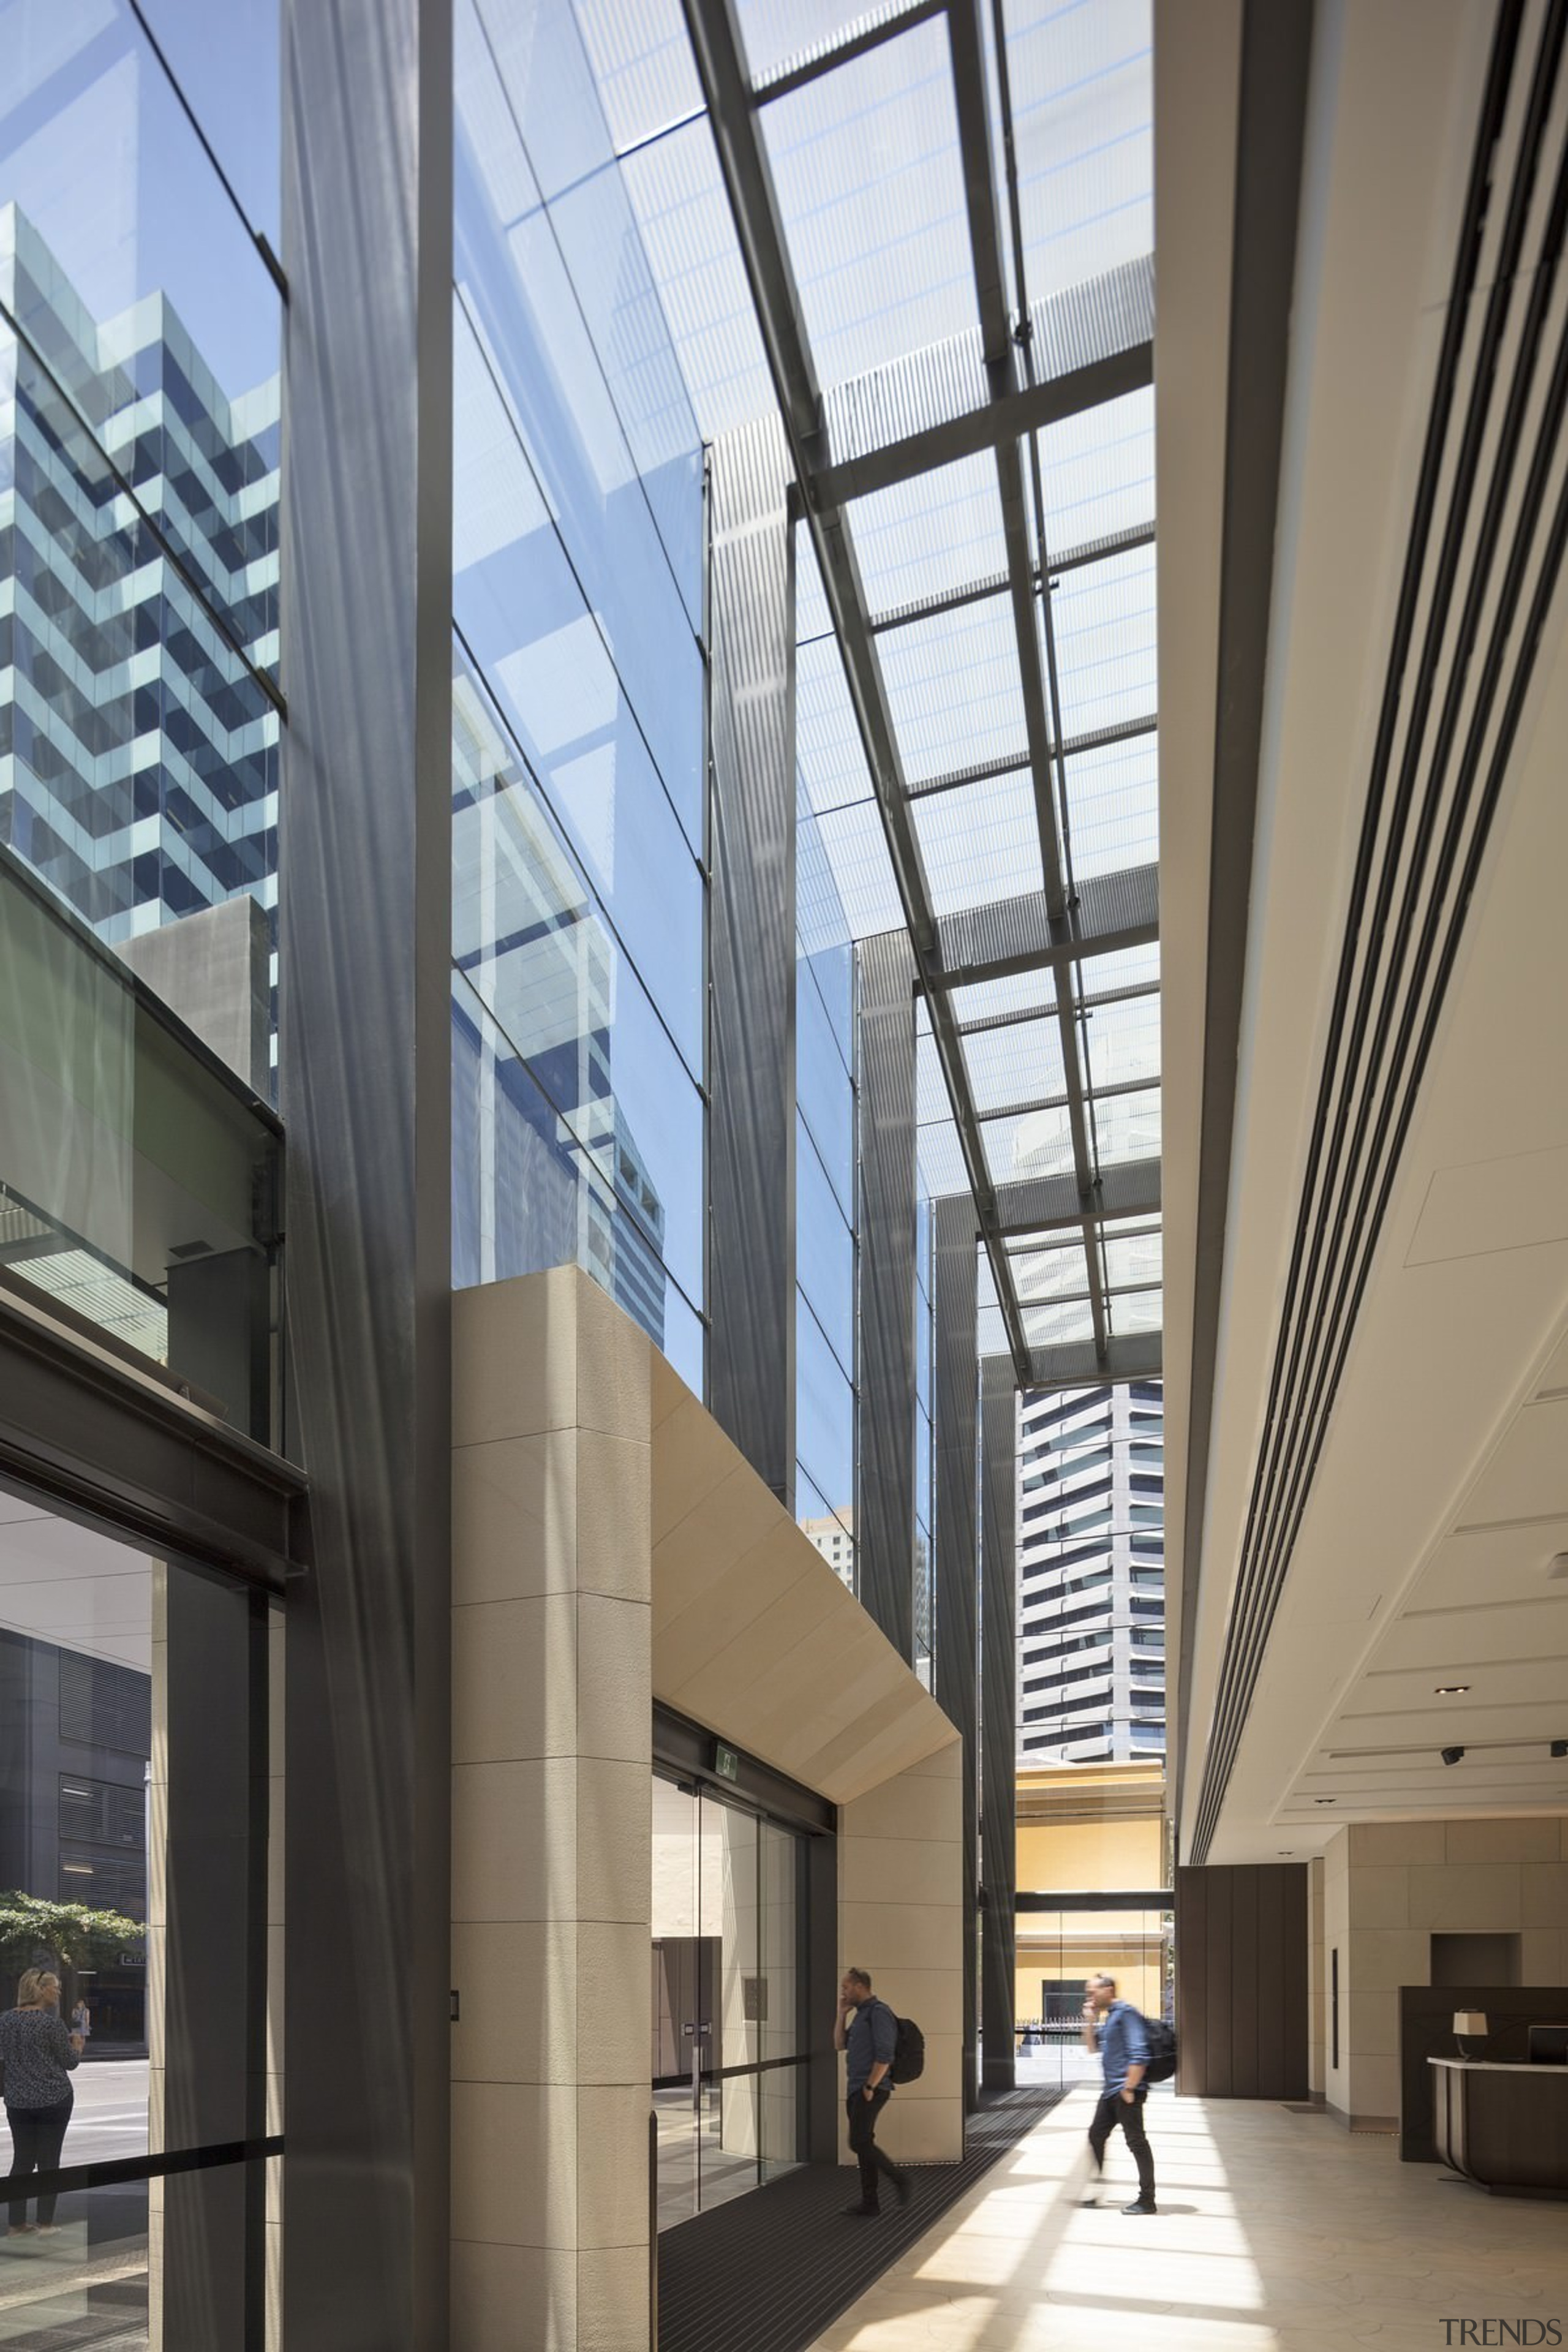 161 Sussex St – Cox Architecture - 161 apartment, architecture, building, commercial building, condominium, corporate headquarters, daylighting, facade, headquarters, lobby, metropolitan area, mixed use, real estate, structure, gray